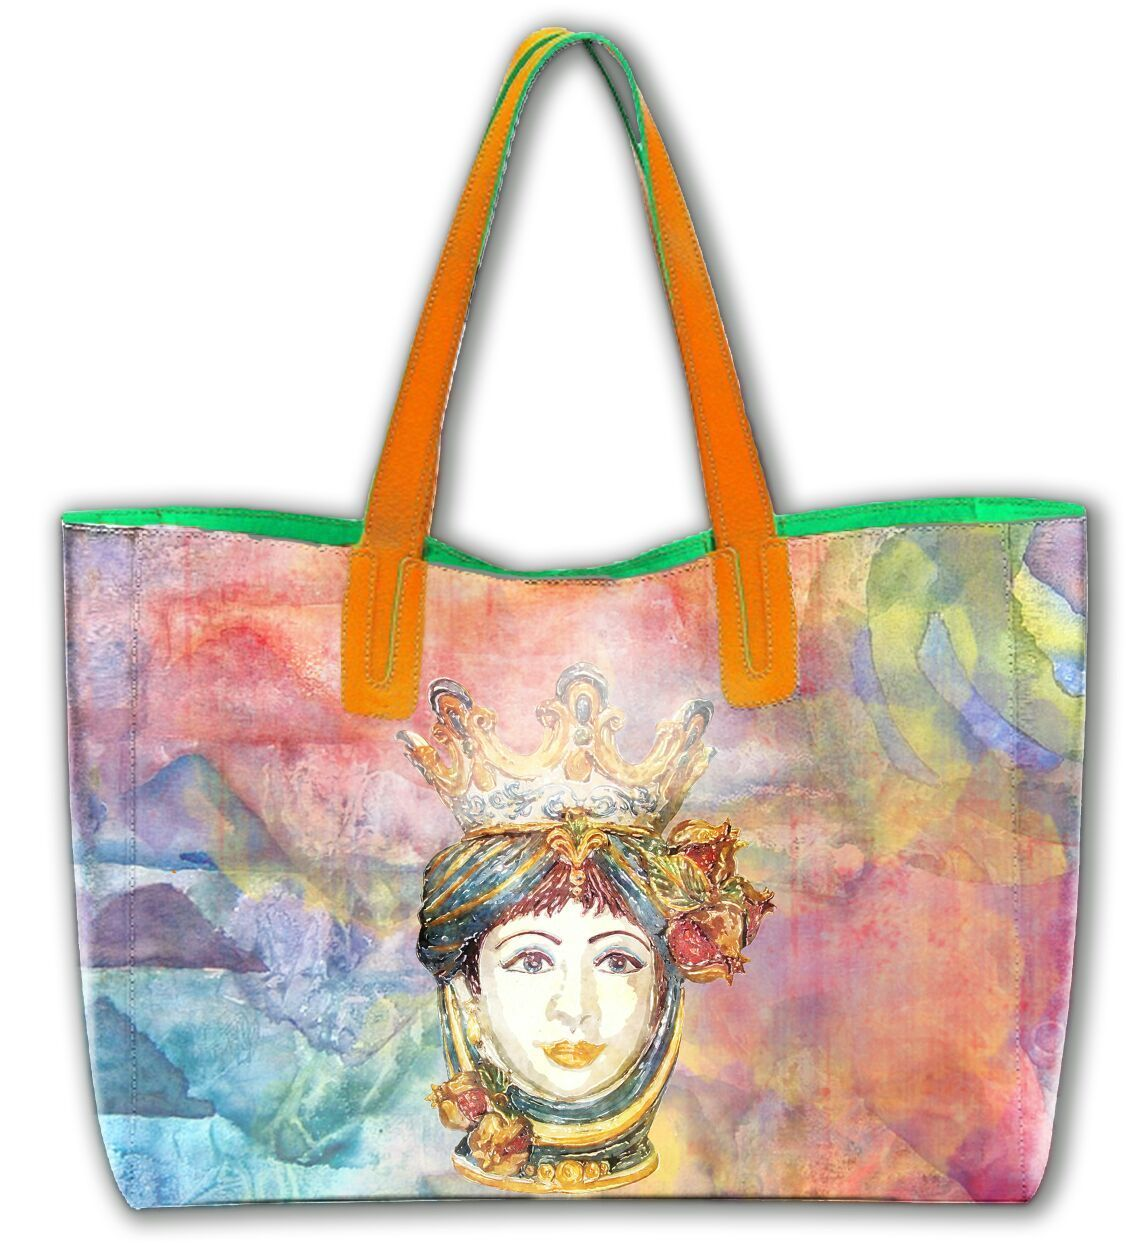 Sacca Mare 05 C019, Lucia Perricone Bags